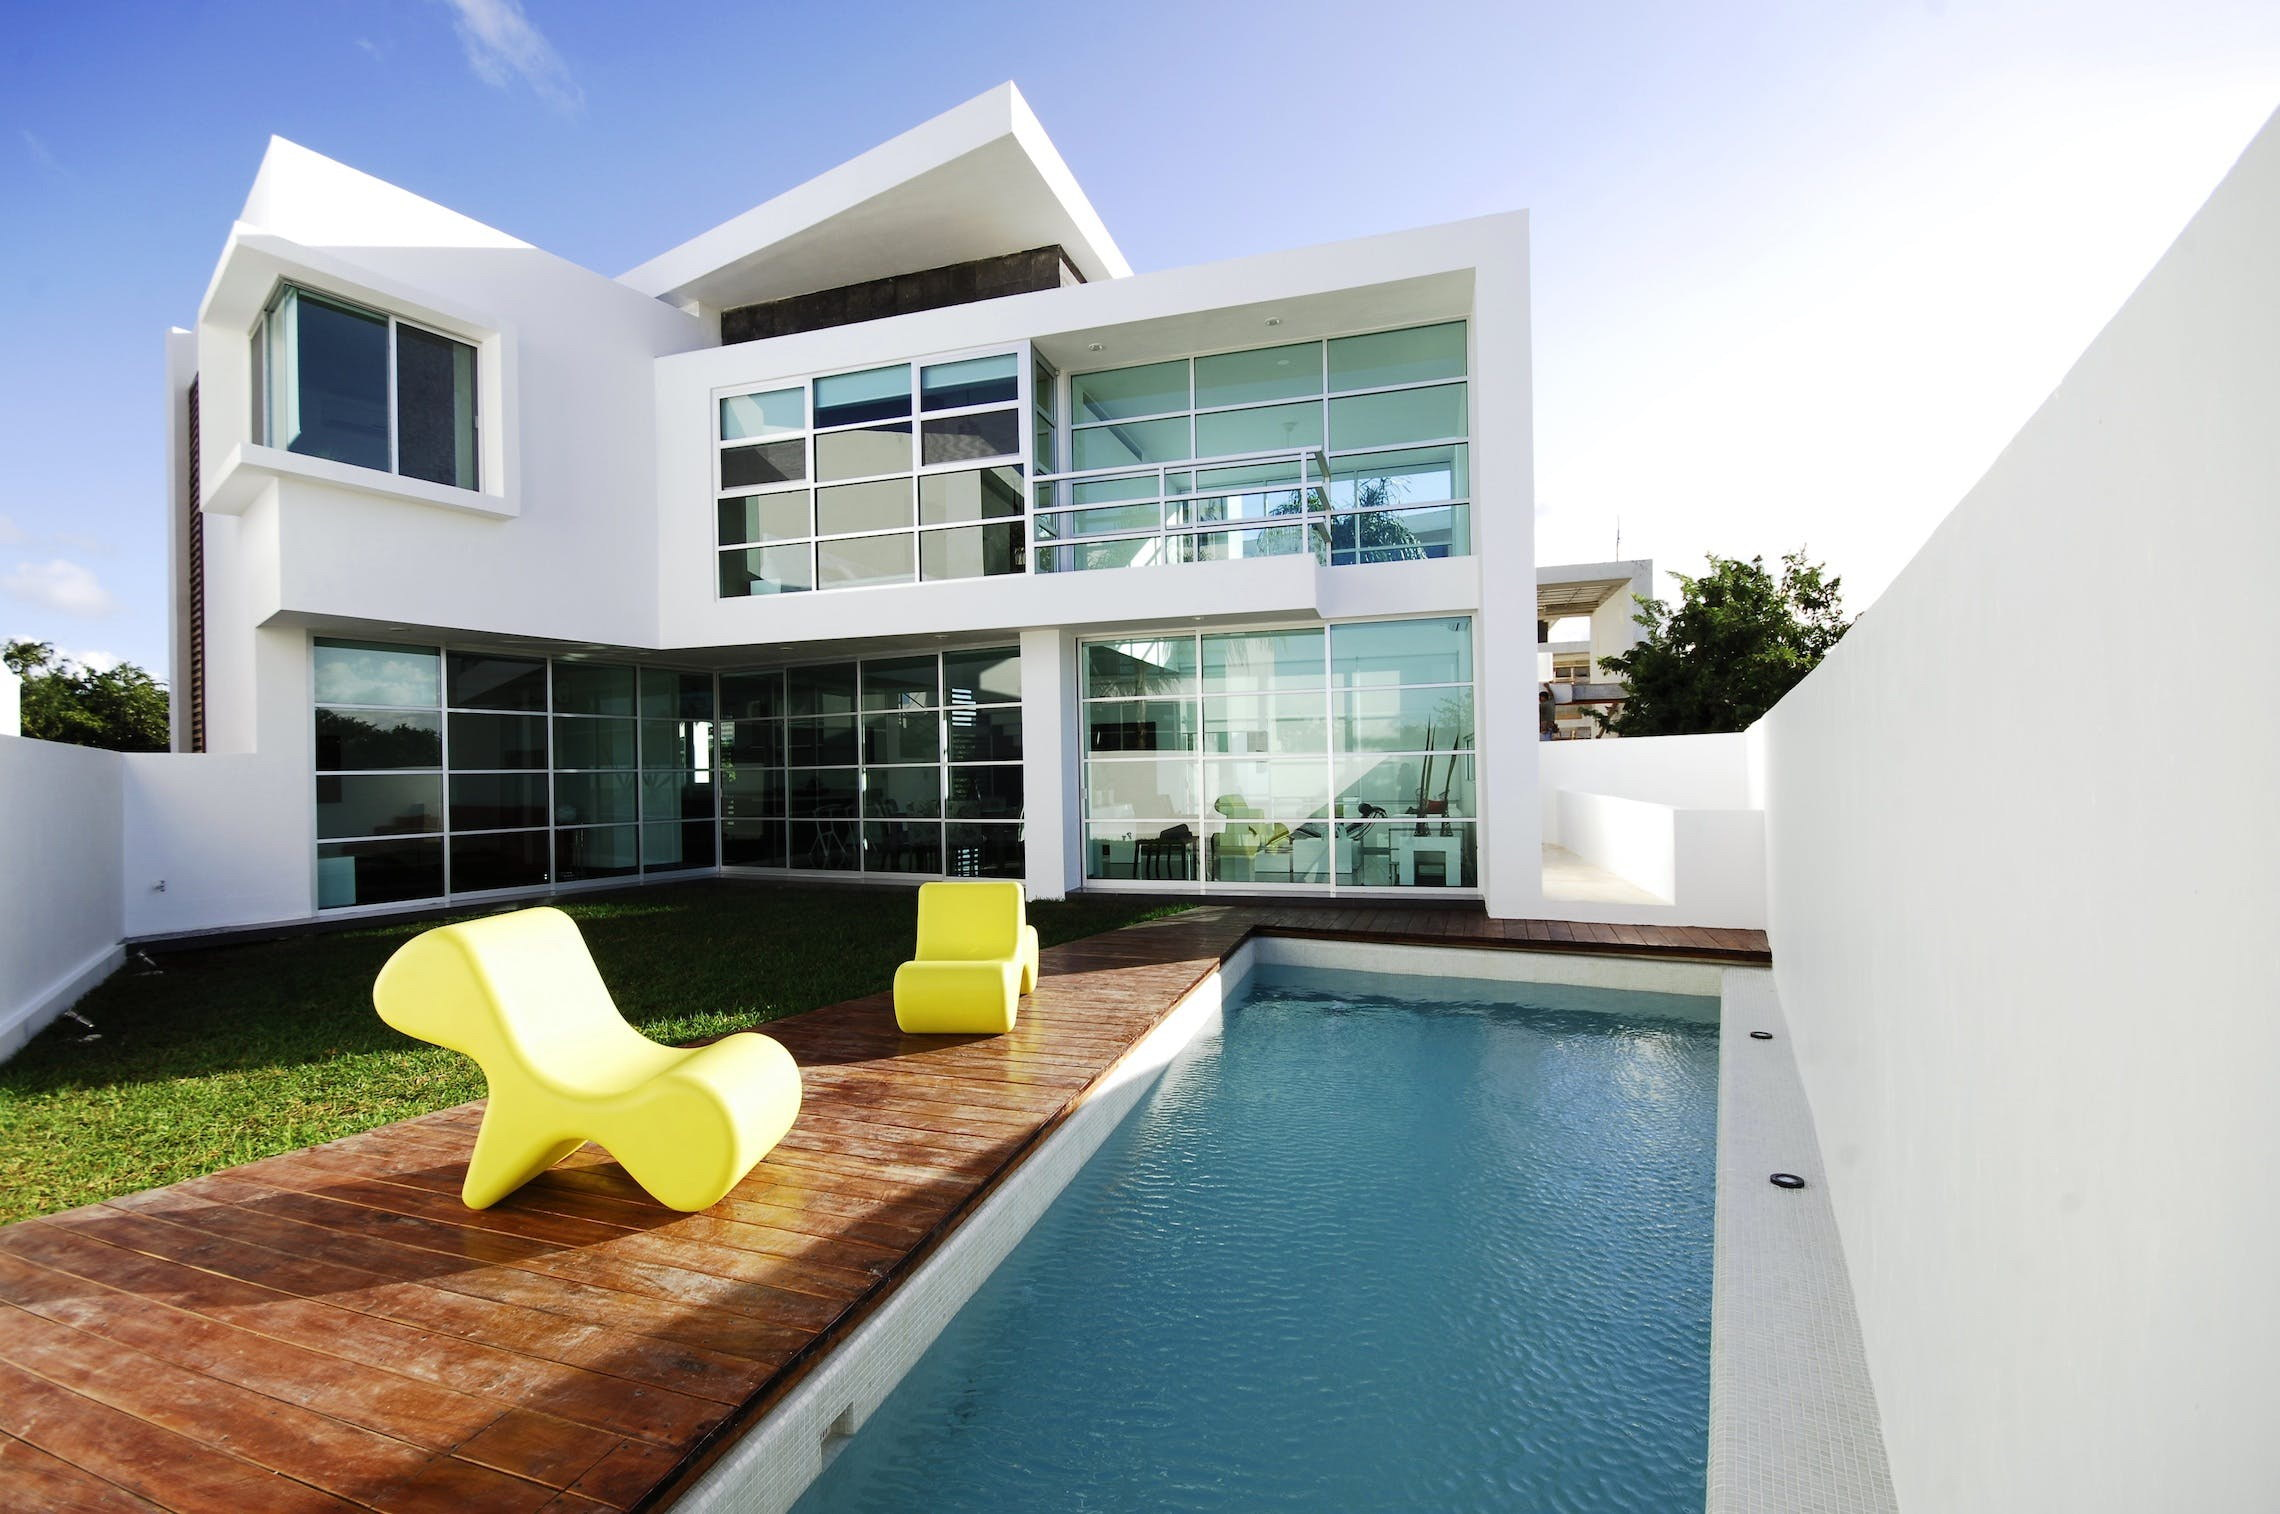 Cumbres Doce in Cancun by SOSTUDIO